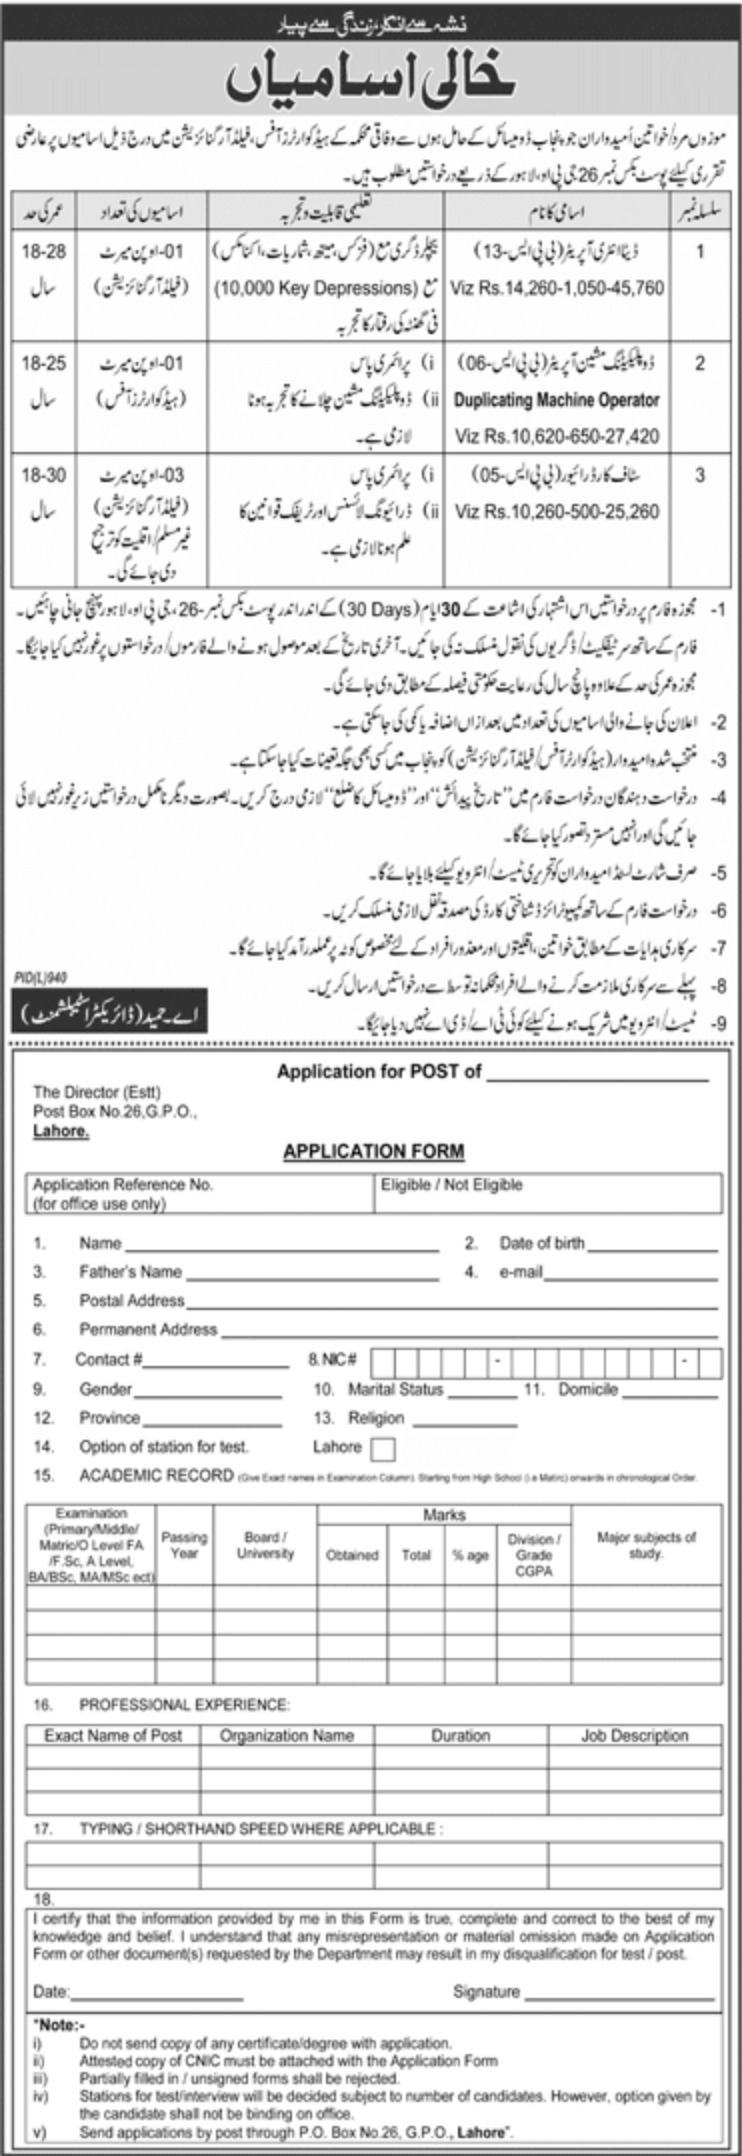 Field Organization Jobs 2019 P.O.Box 26 Lahore